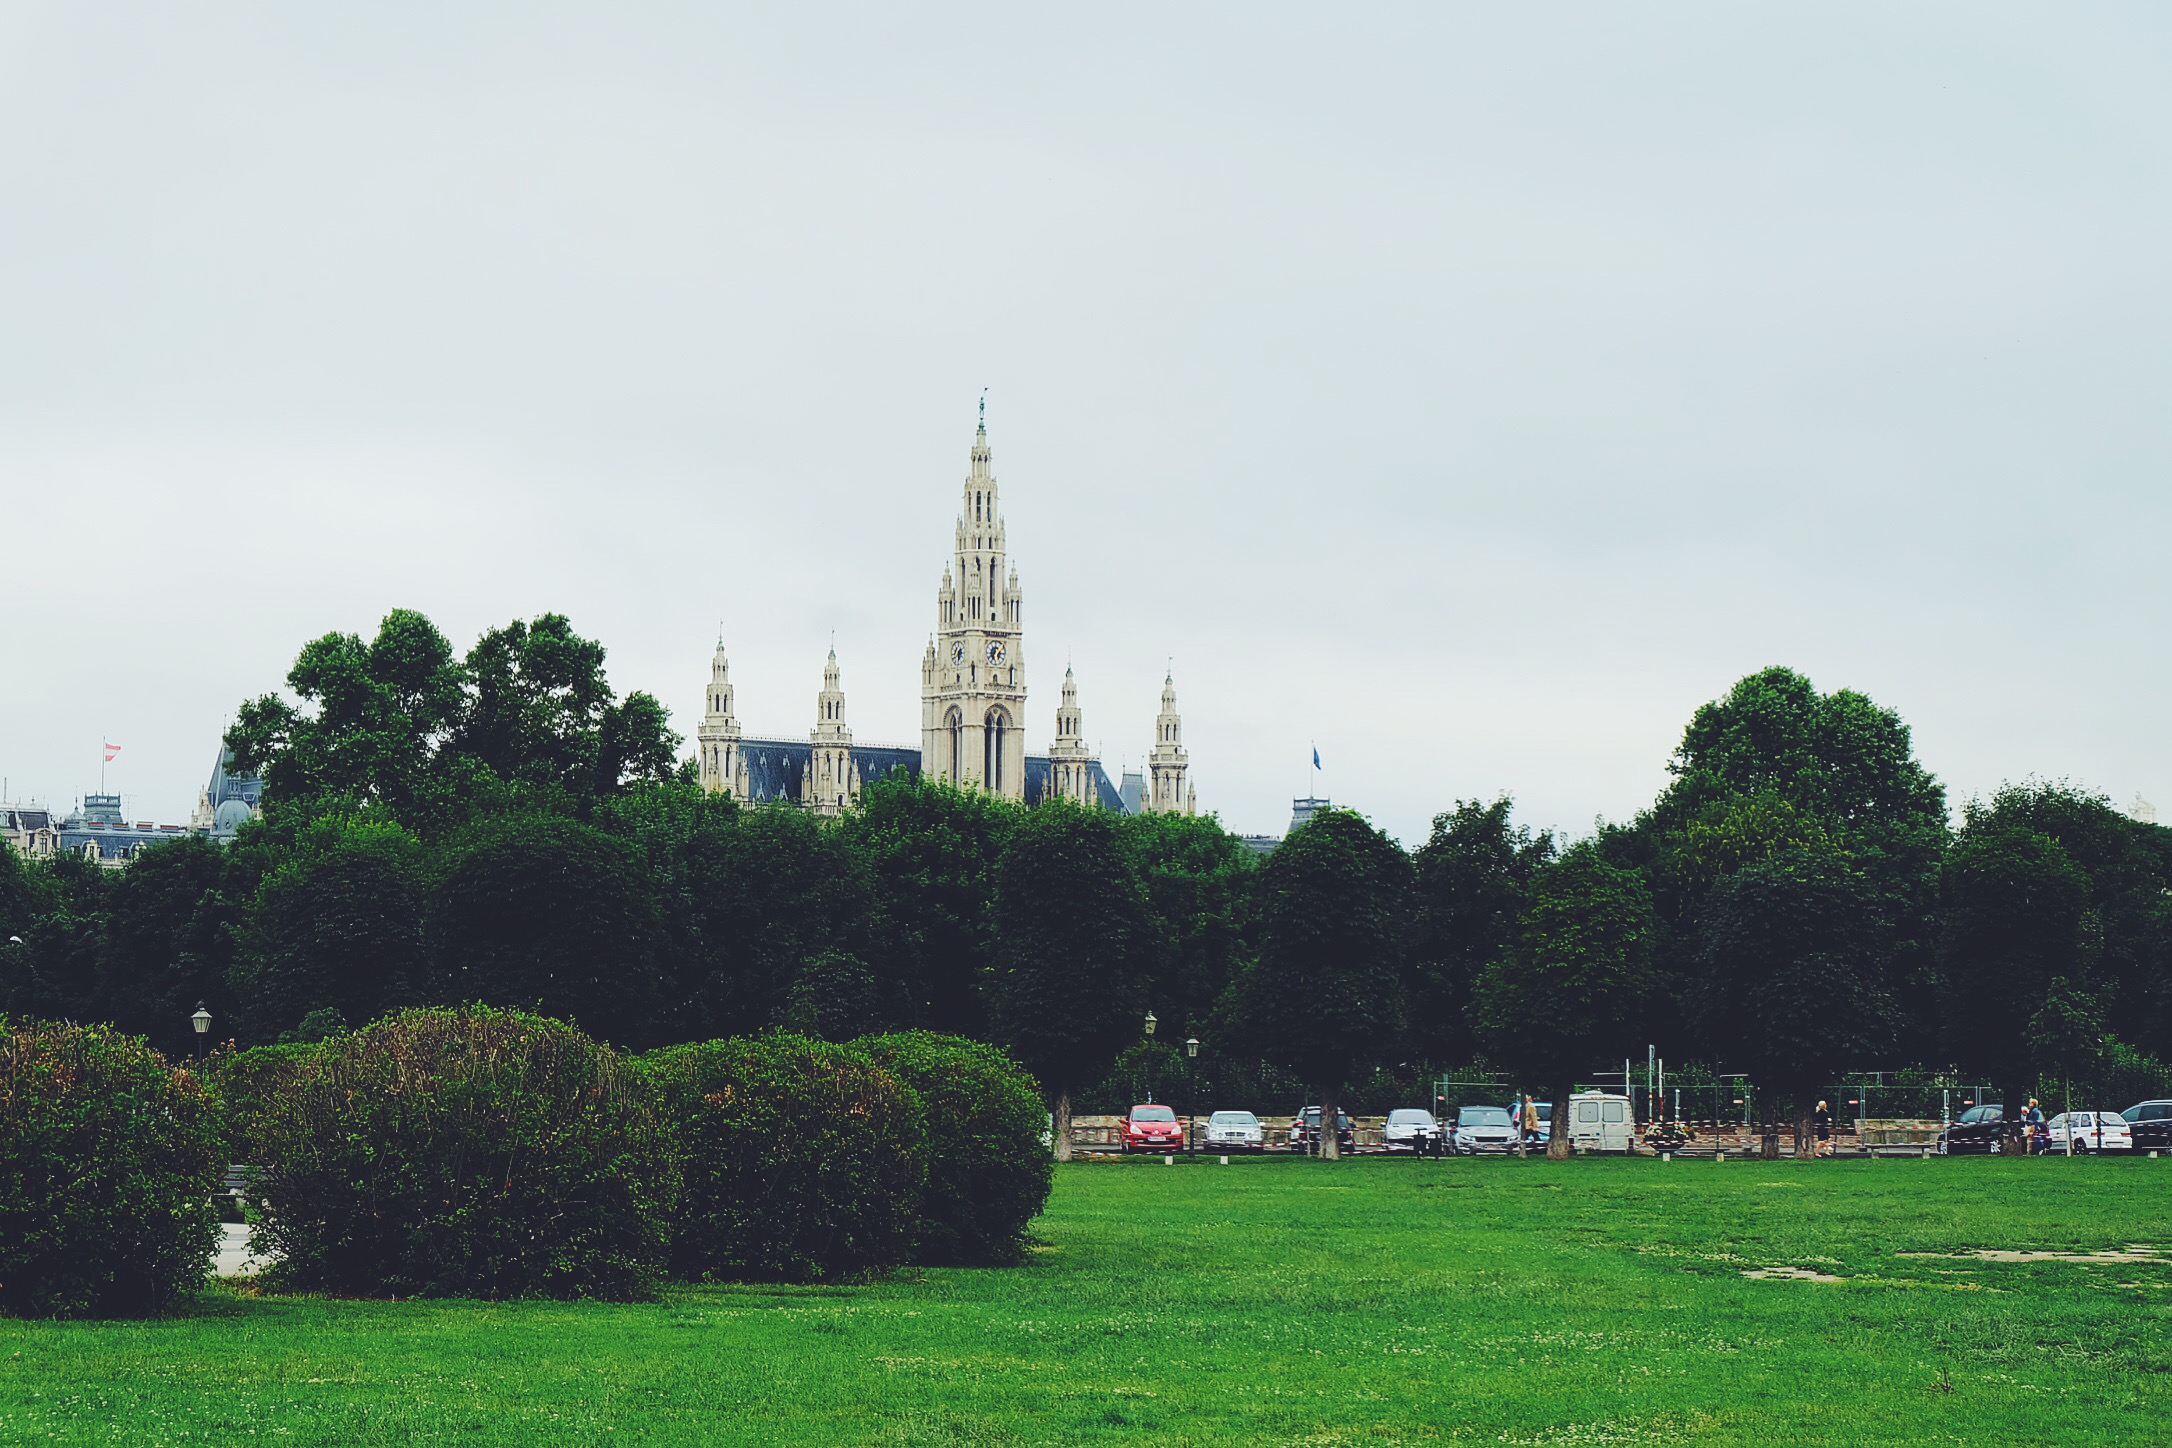 Rathaus from a distance